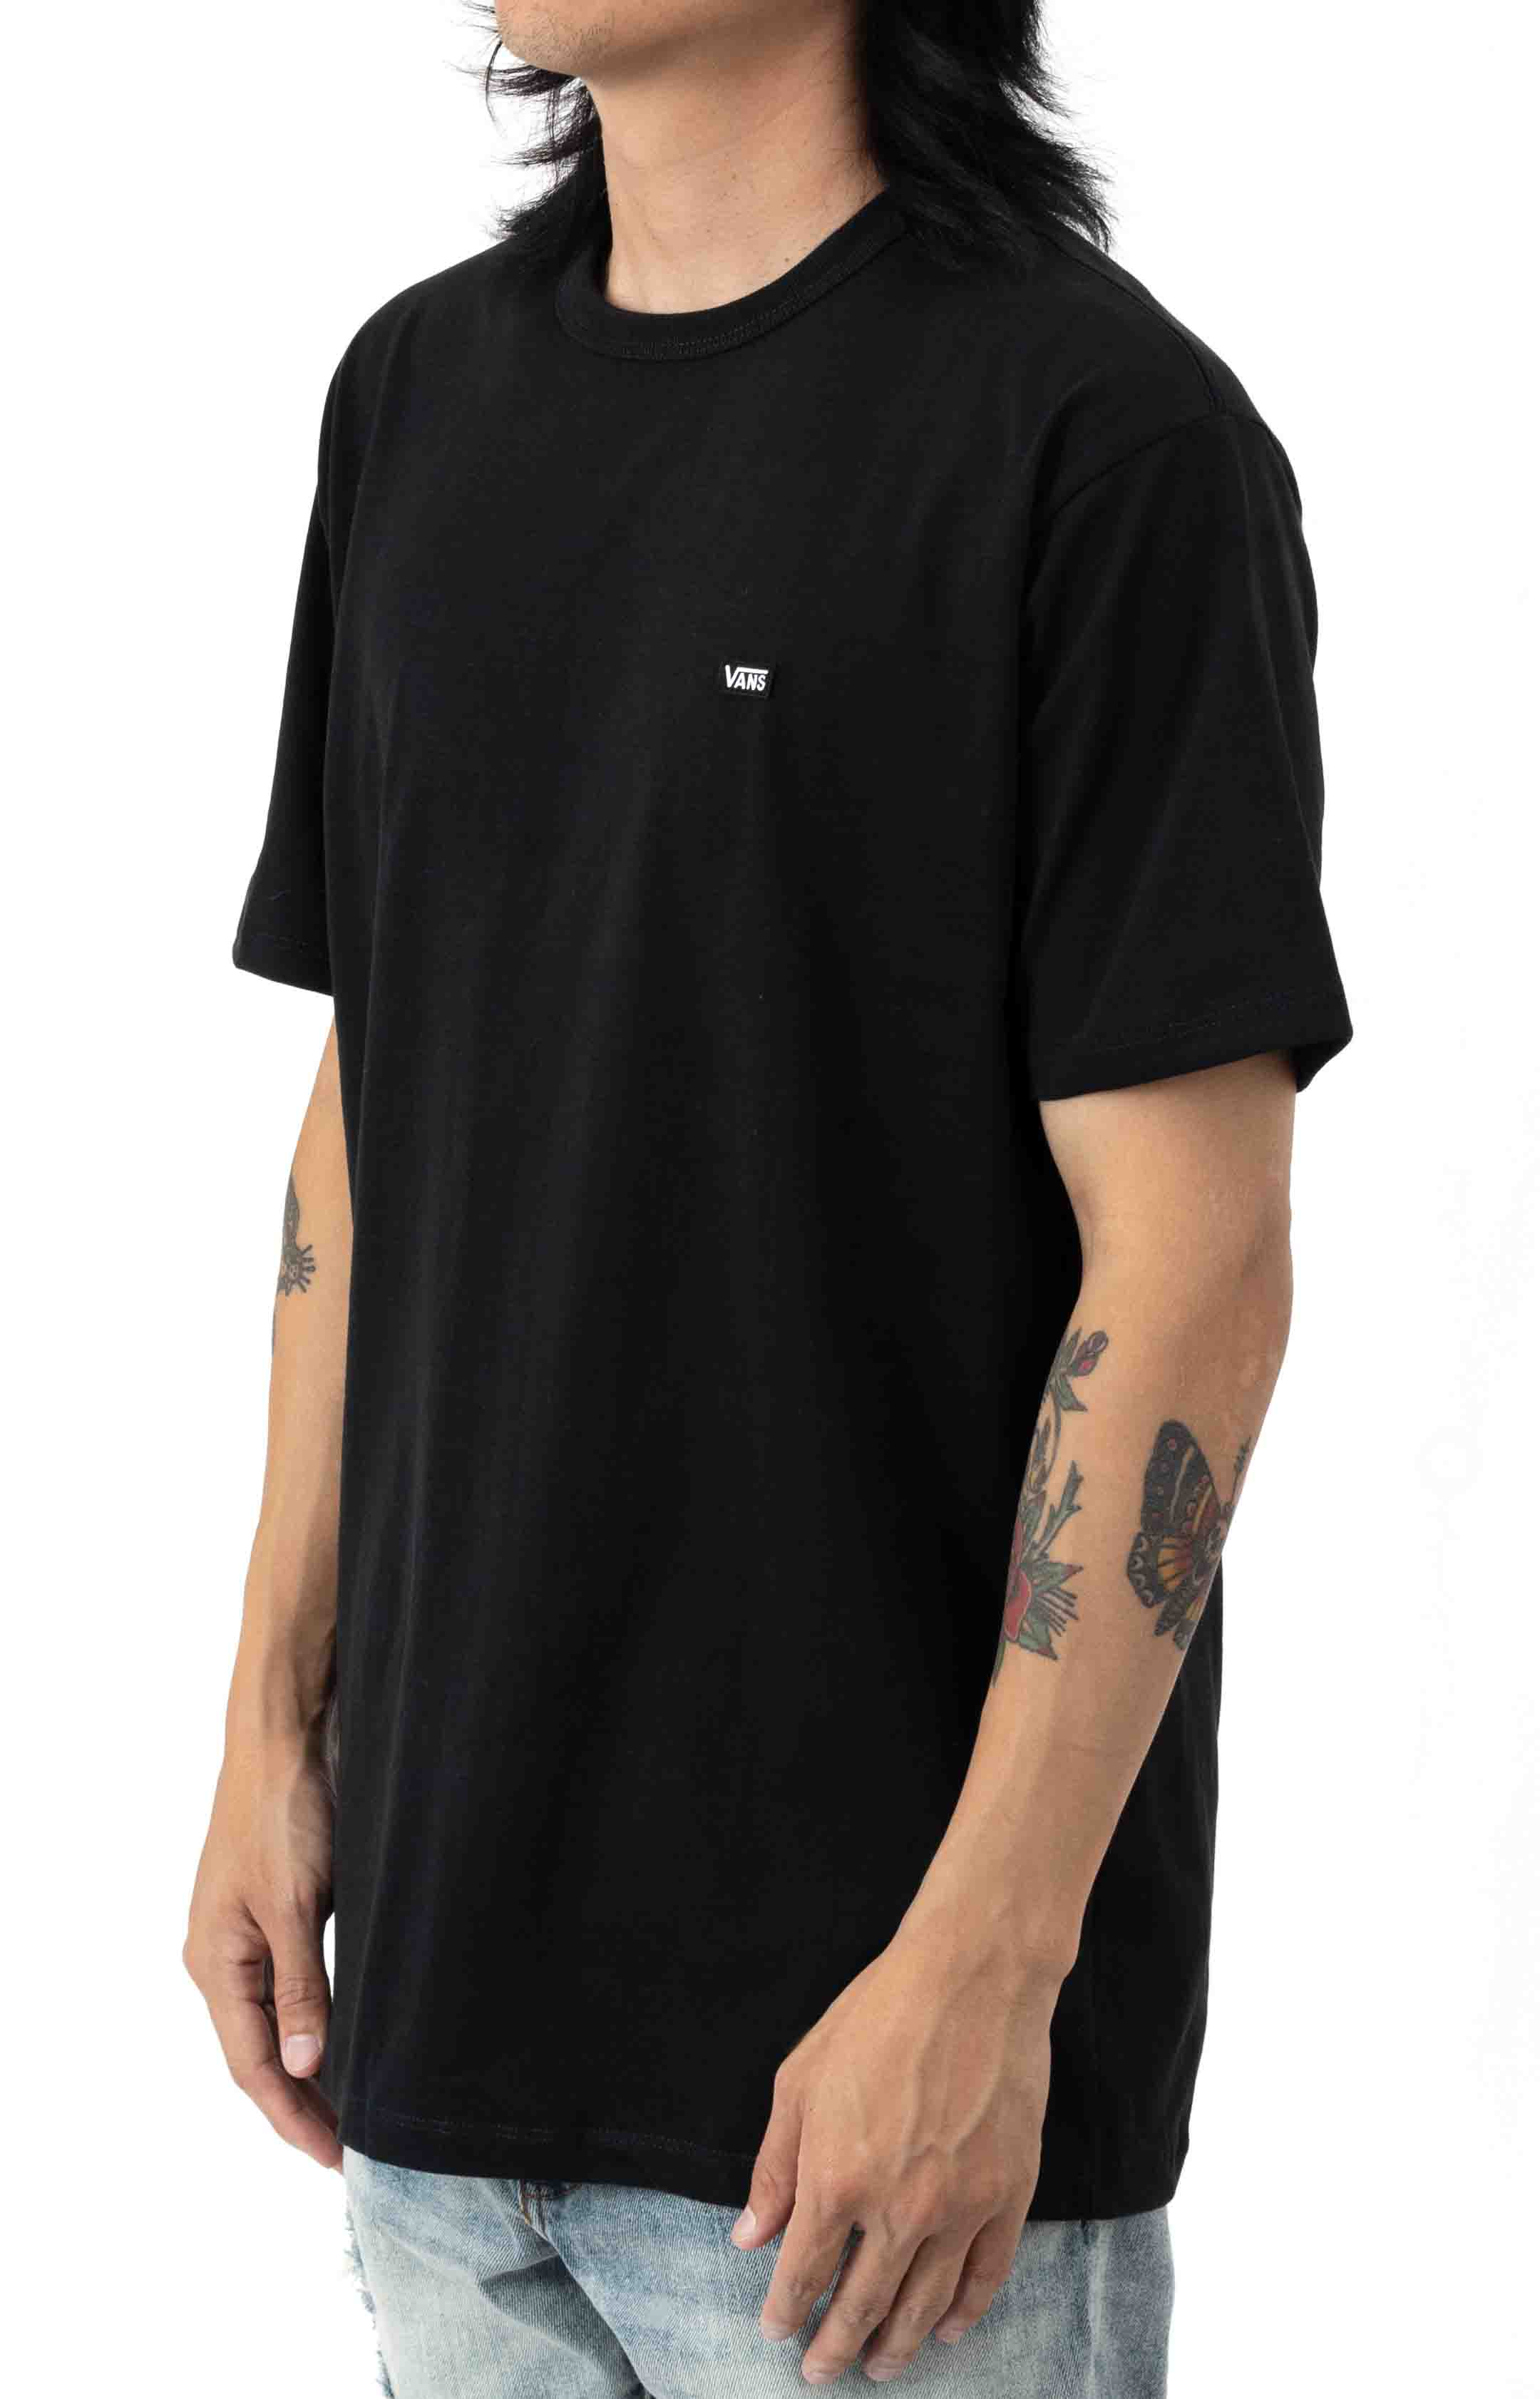 Off The Wall Classic T-Shirt - Black  2